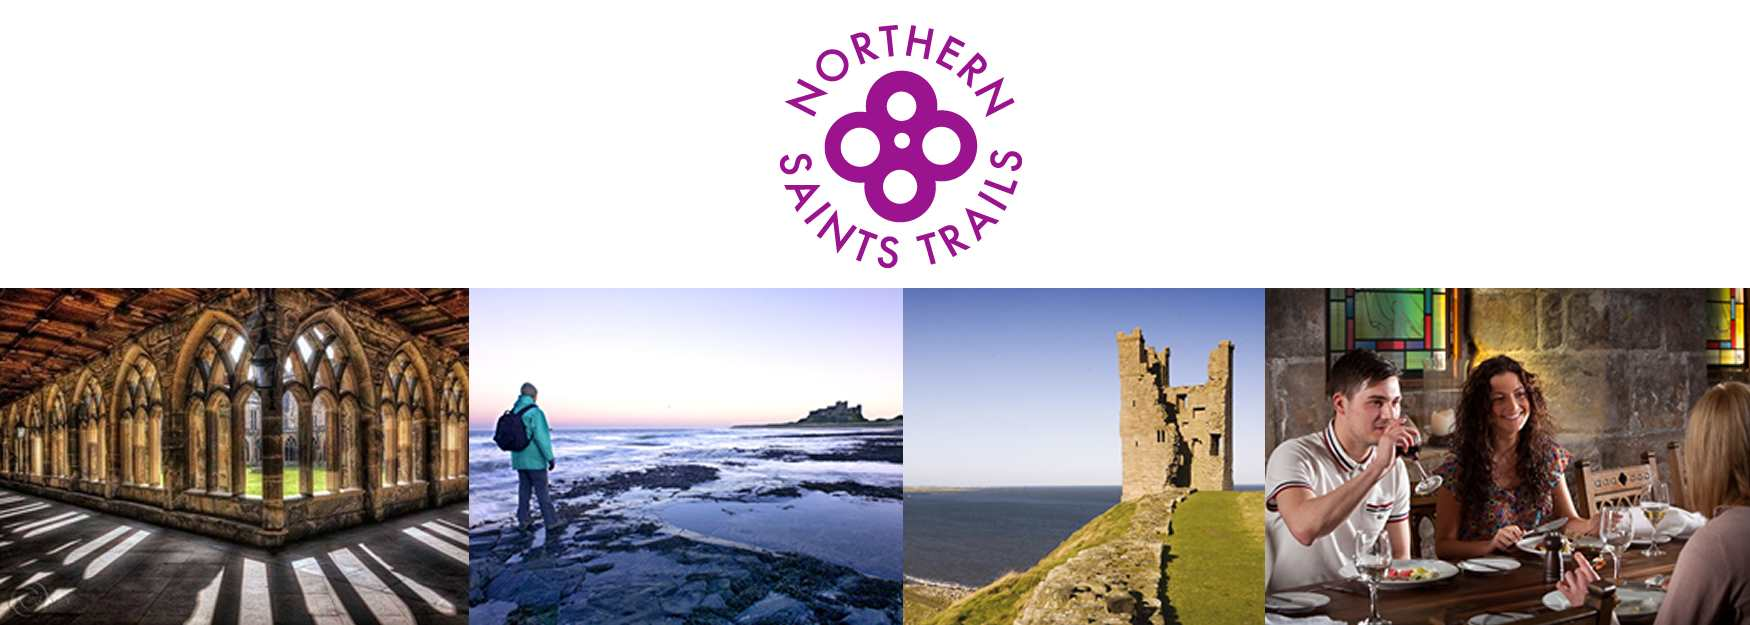 Northern Saints Trails Durham